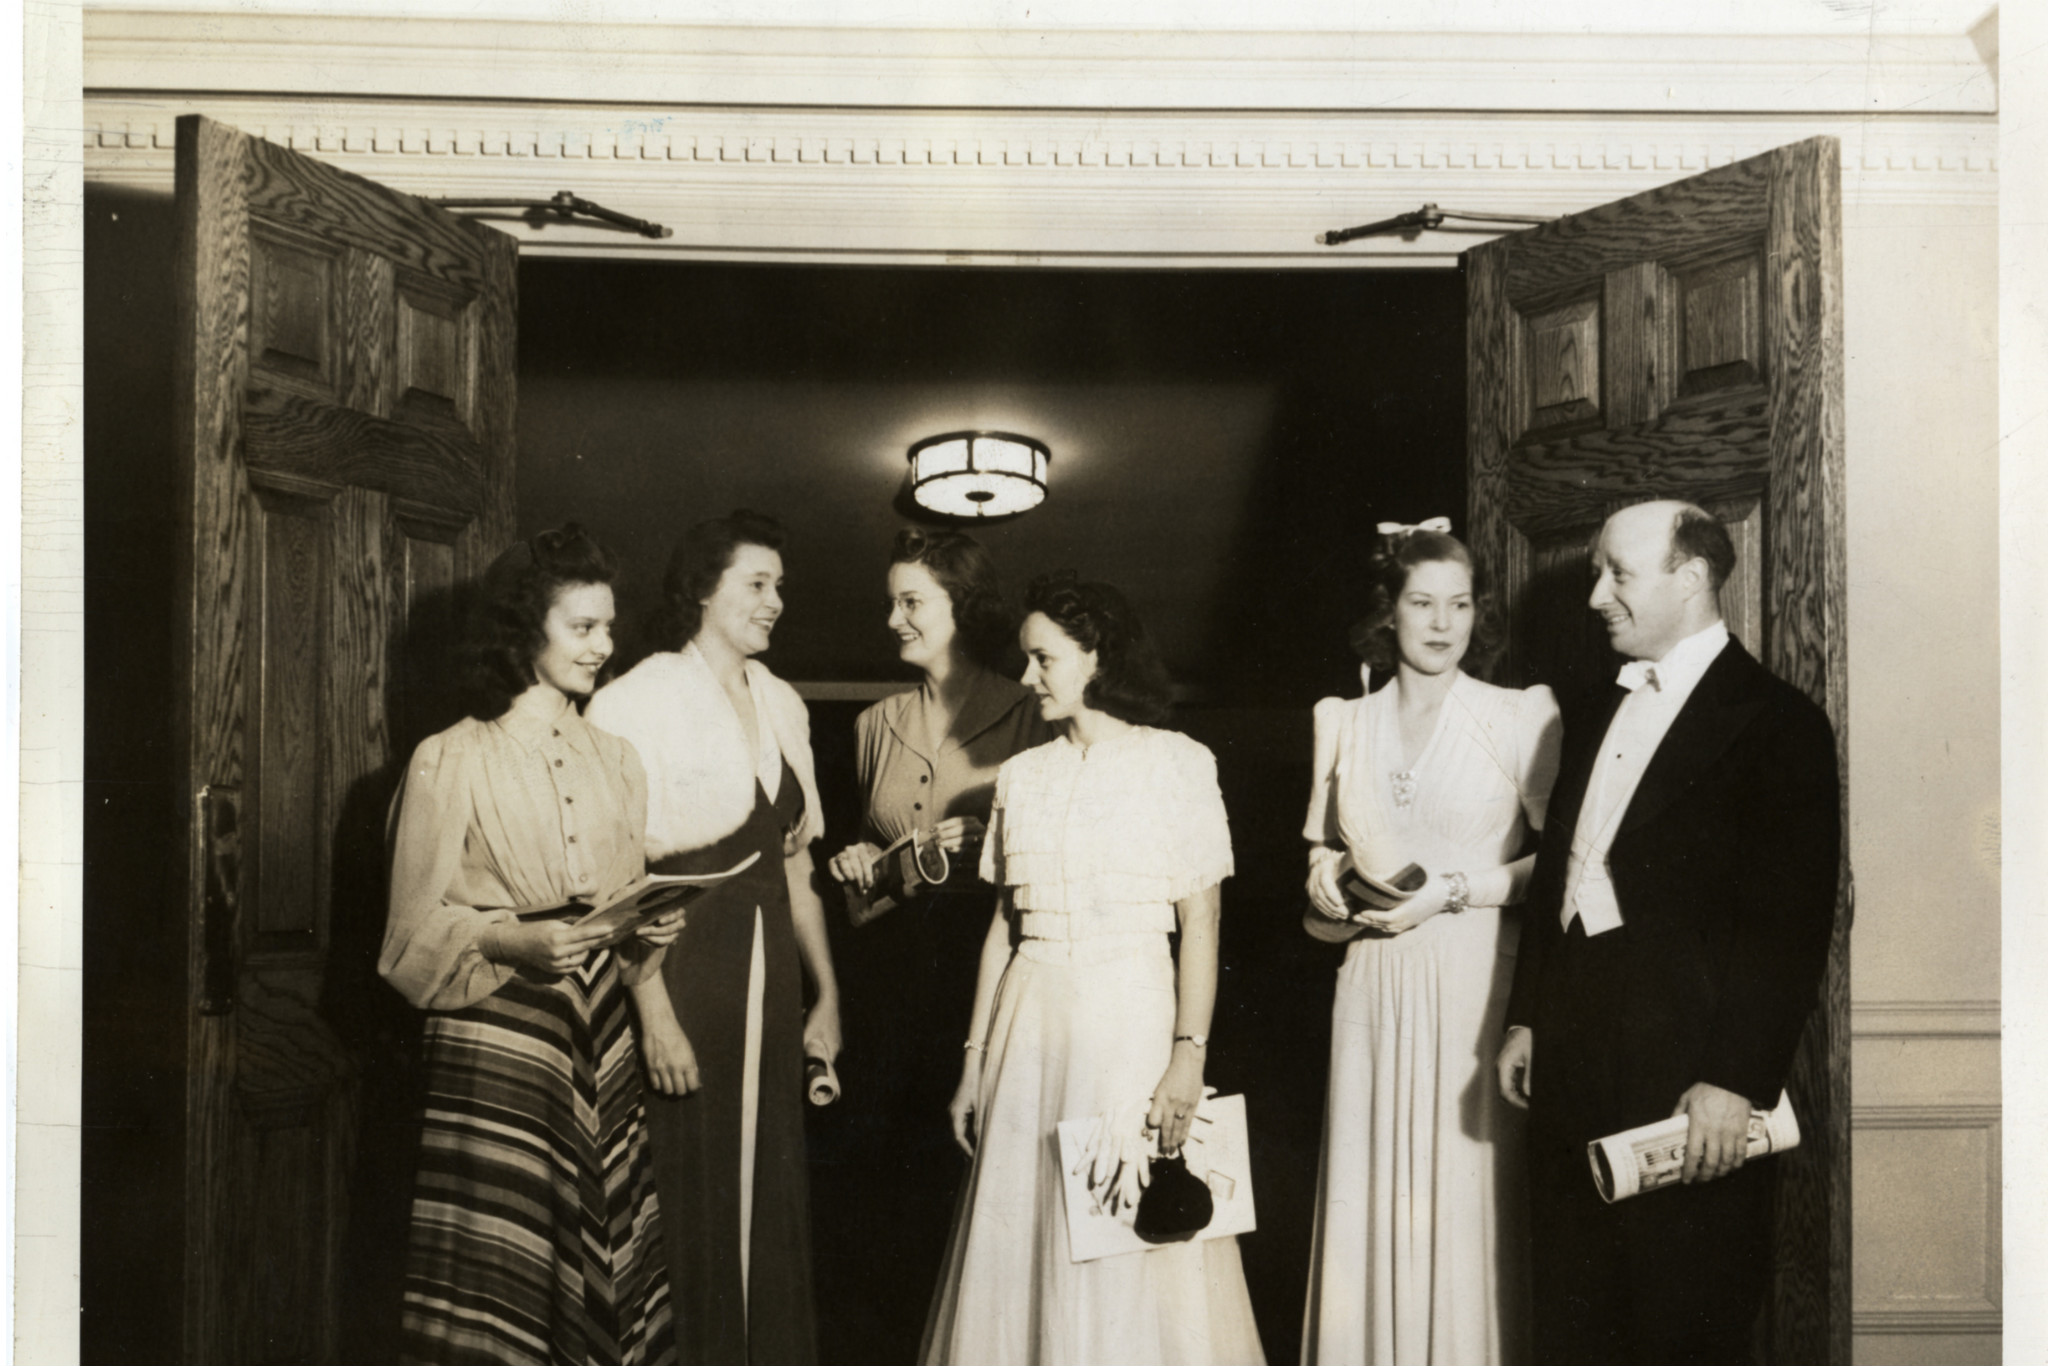 Formal Function at Dodd Auditorium, 1940